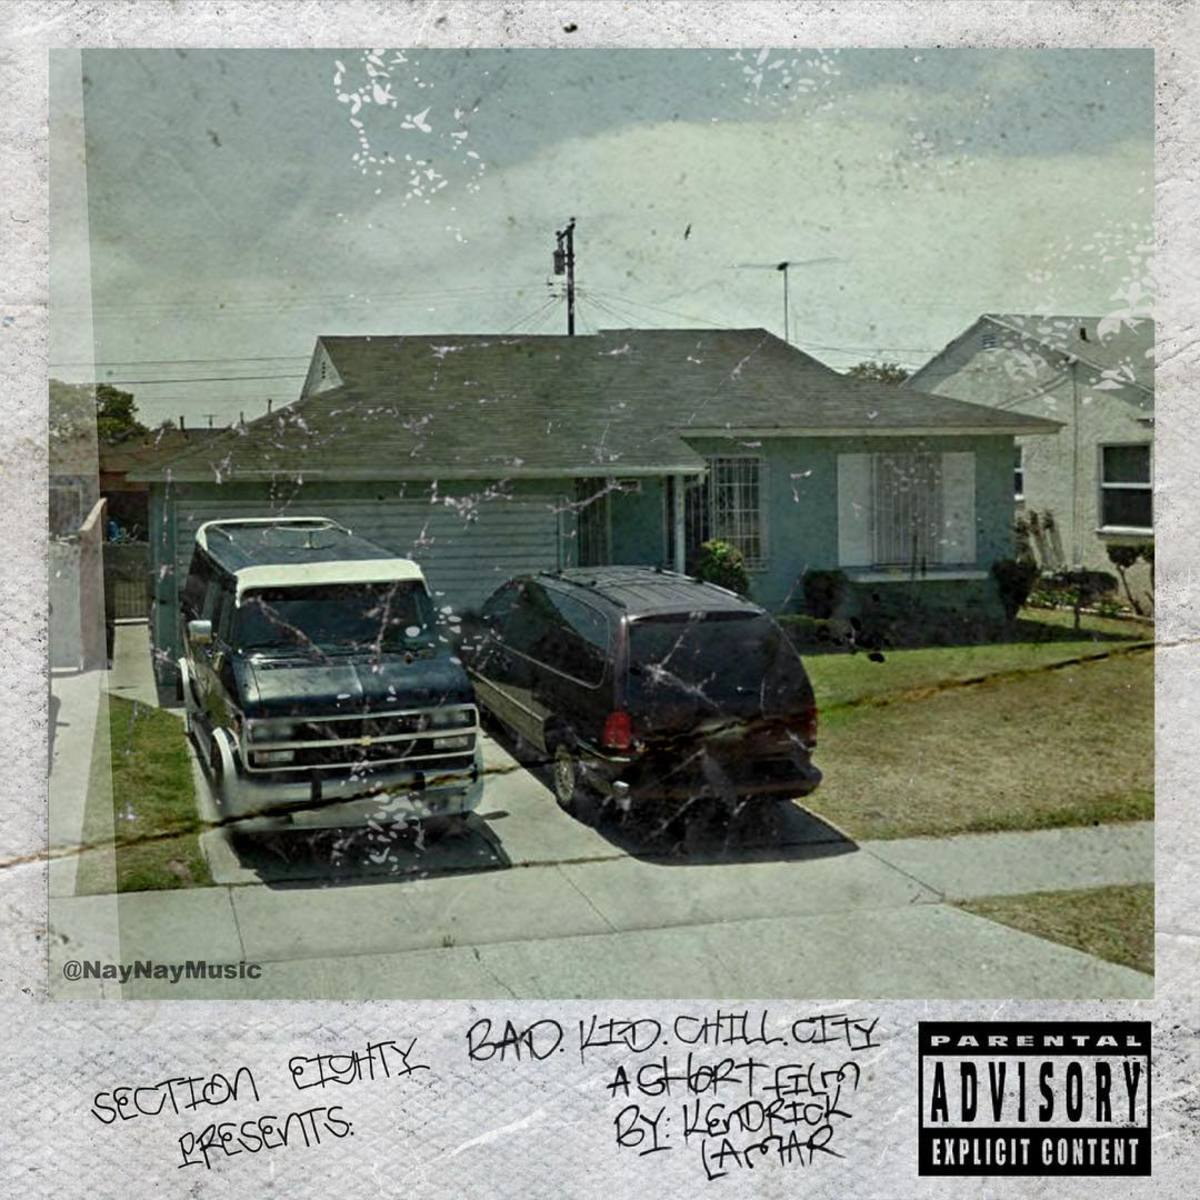 Bad Kid Chill City EP - Kendrick Lamar